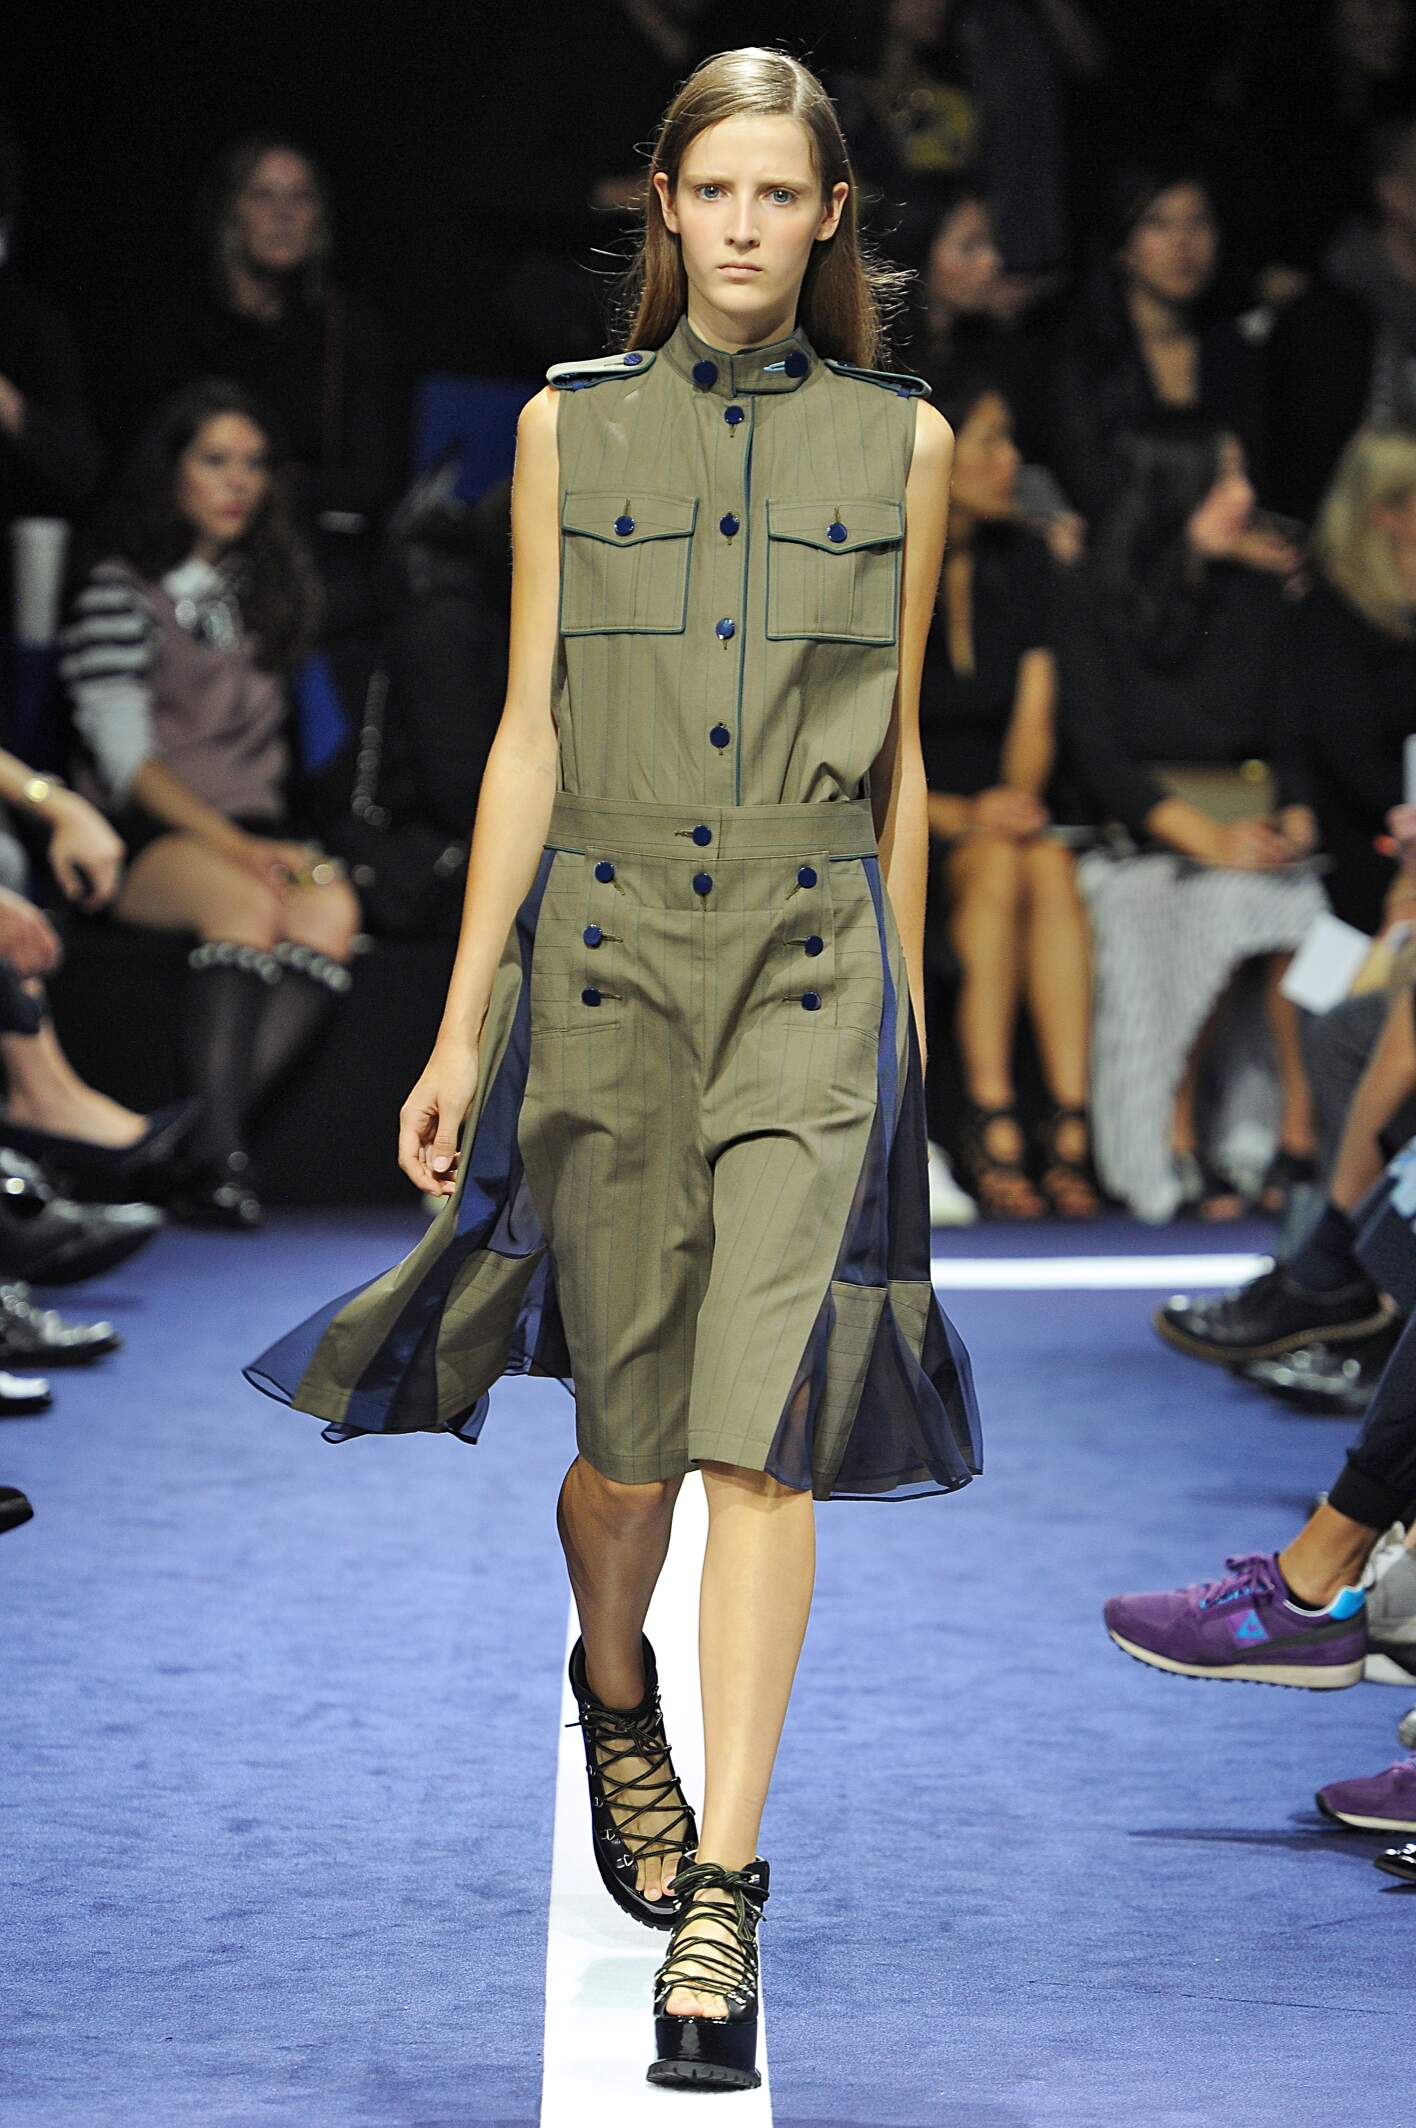 2015 Catwalk Sacai Woman Fashion Show Summer